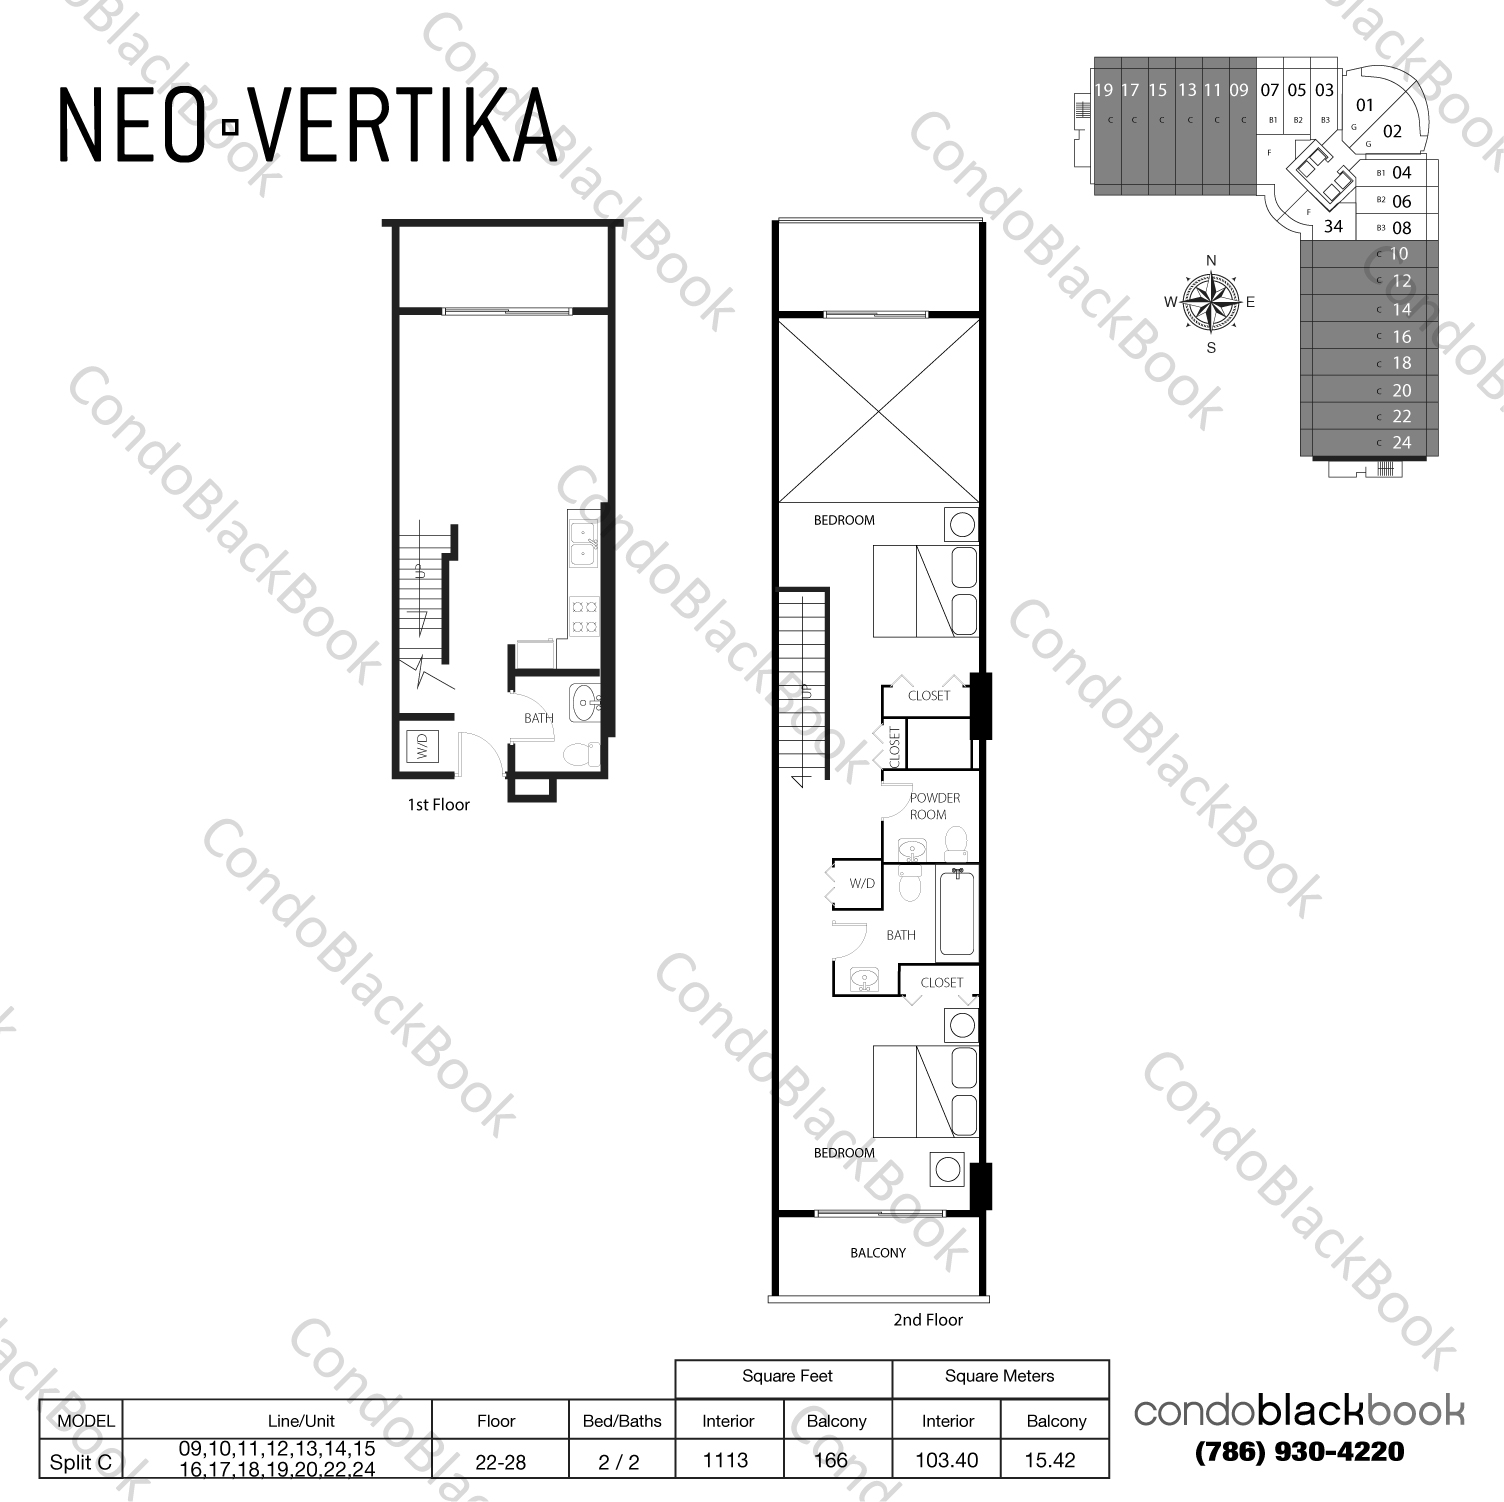 Neo Vertika: Neo Vertika Unit #2319 Condo For Sale In Brickell